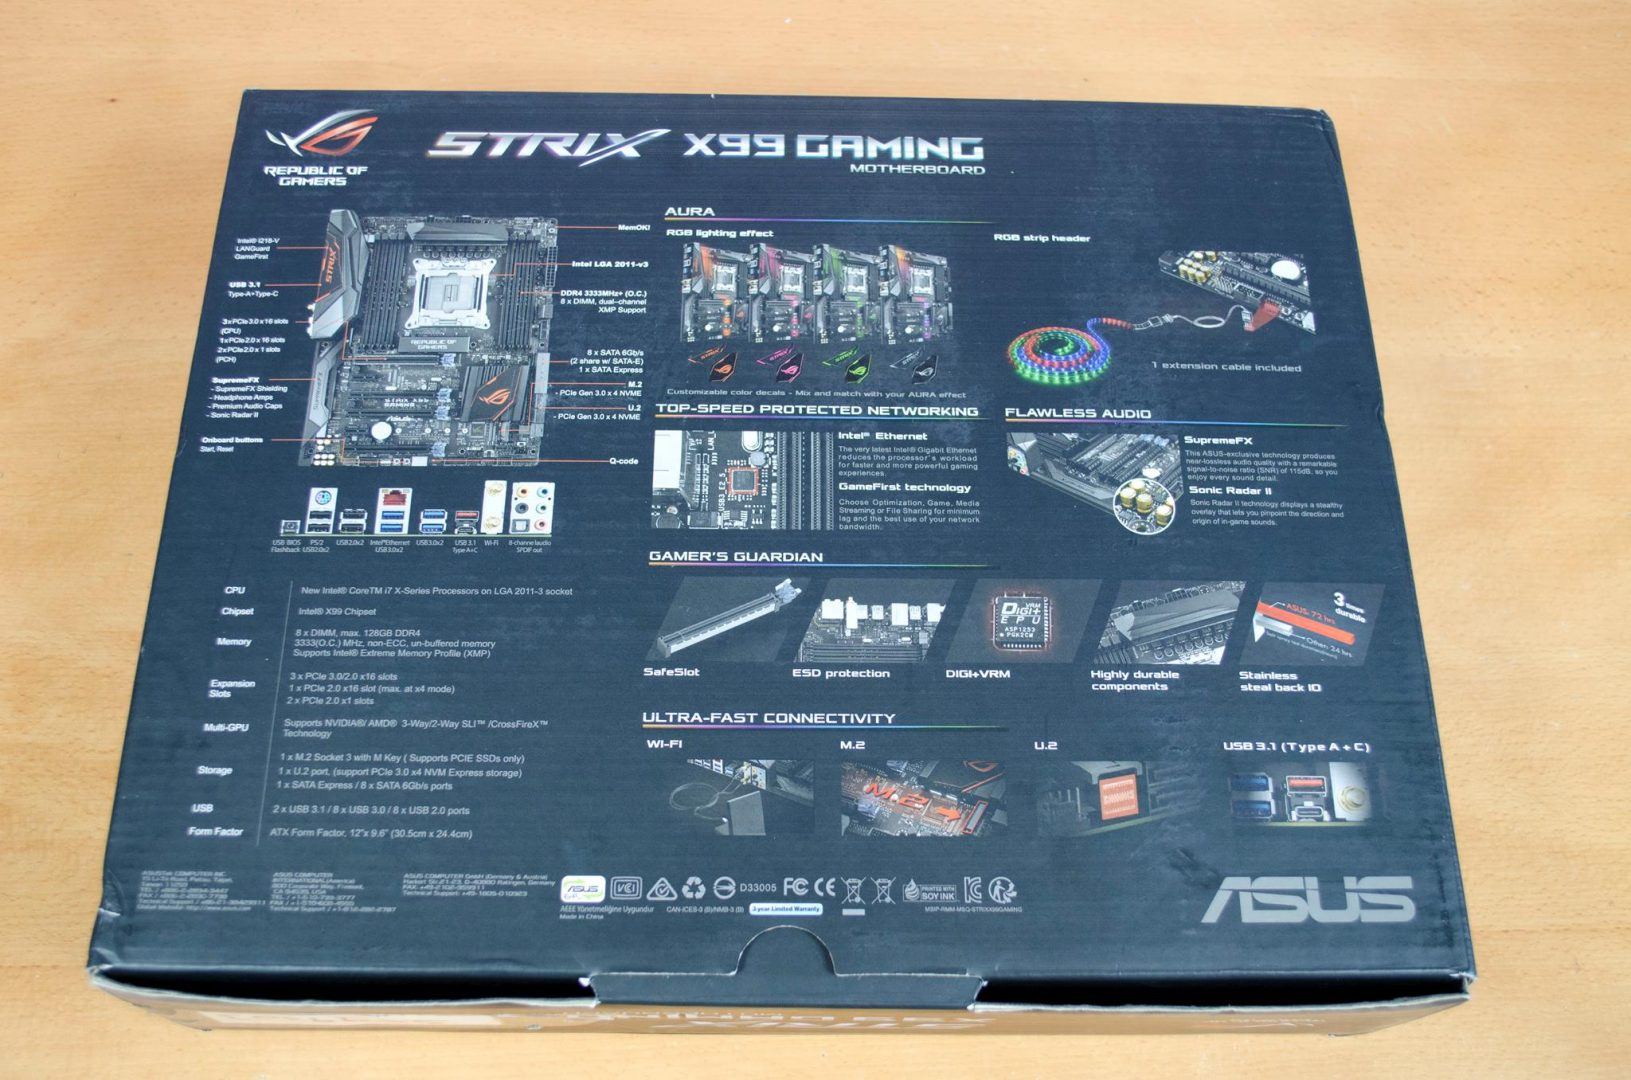 asus rog strix x99 gaming motherboard review_1